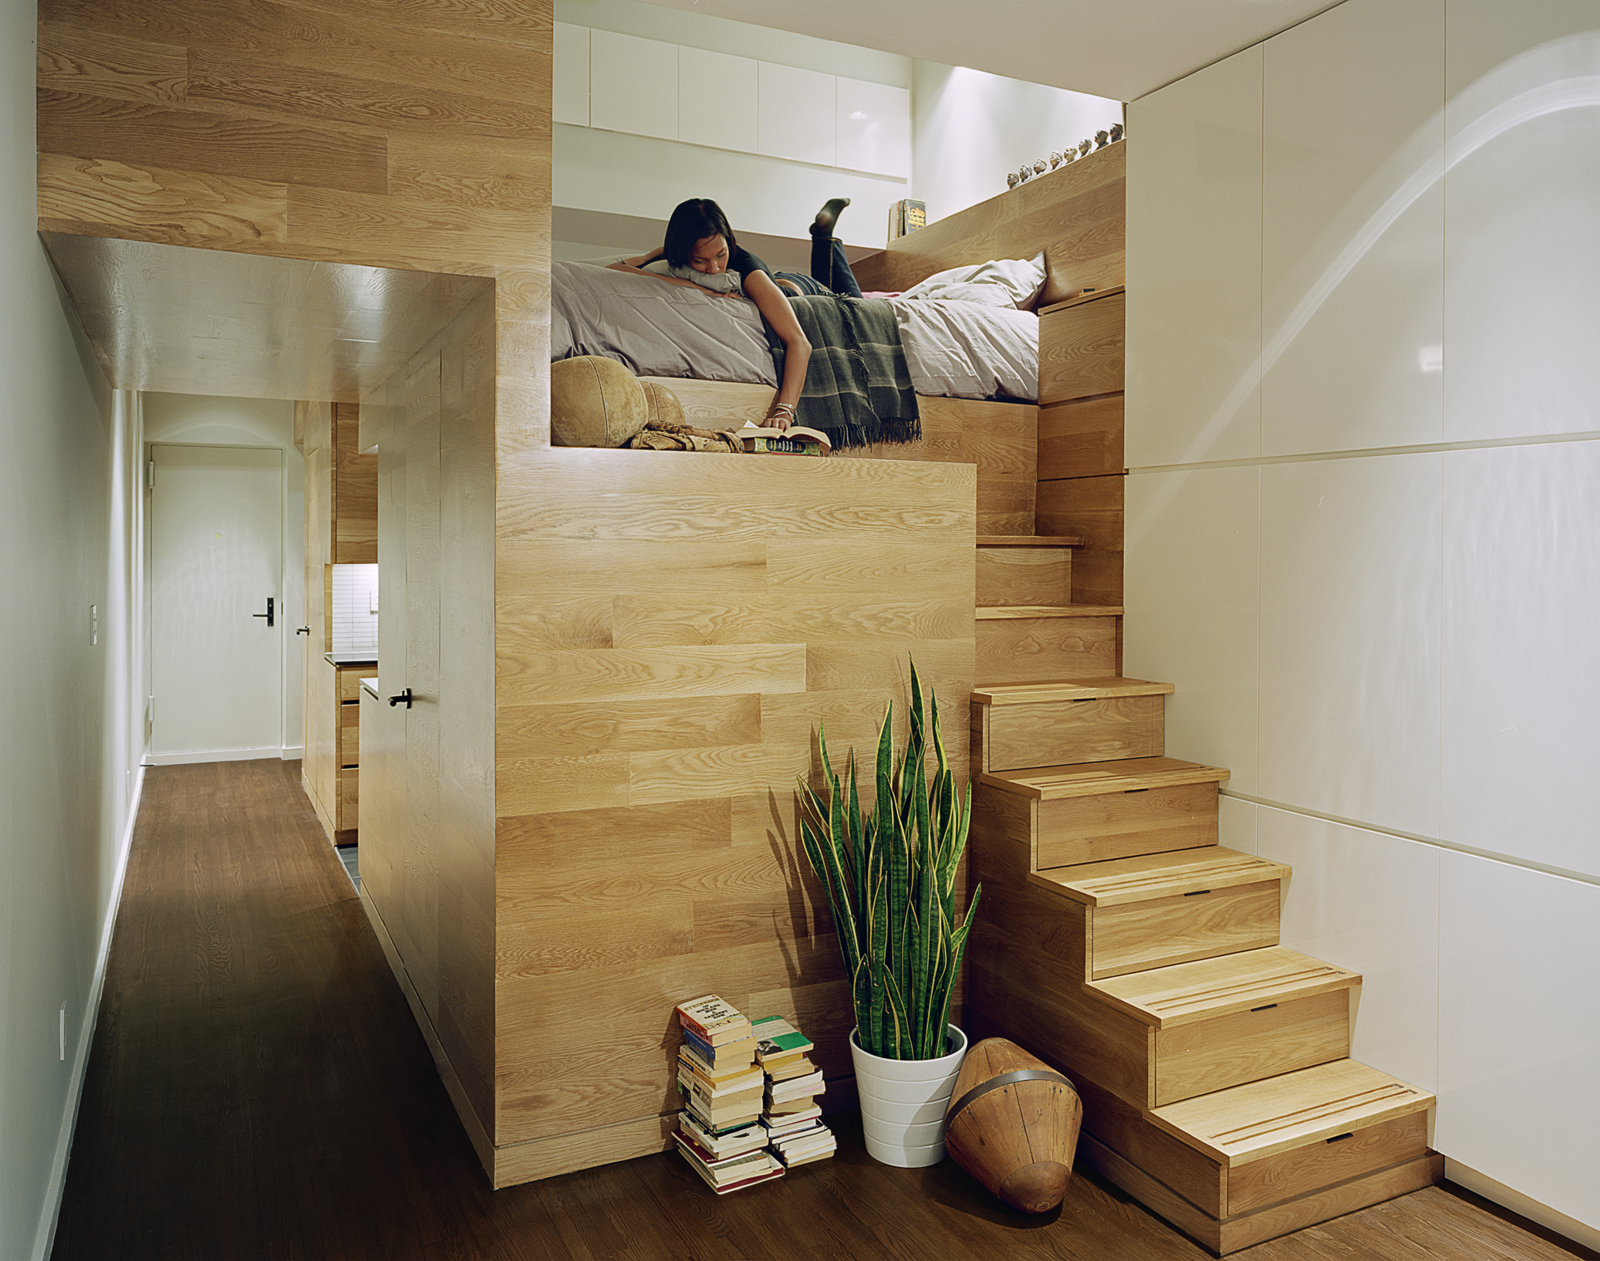 East Village Studio, Jordan Parnass p26-29  Photo 11 of 15 in Gestalten's New Book Shows How to Transform Small Spaces Into Design Marvels